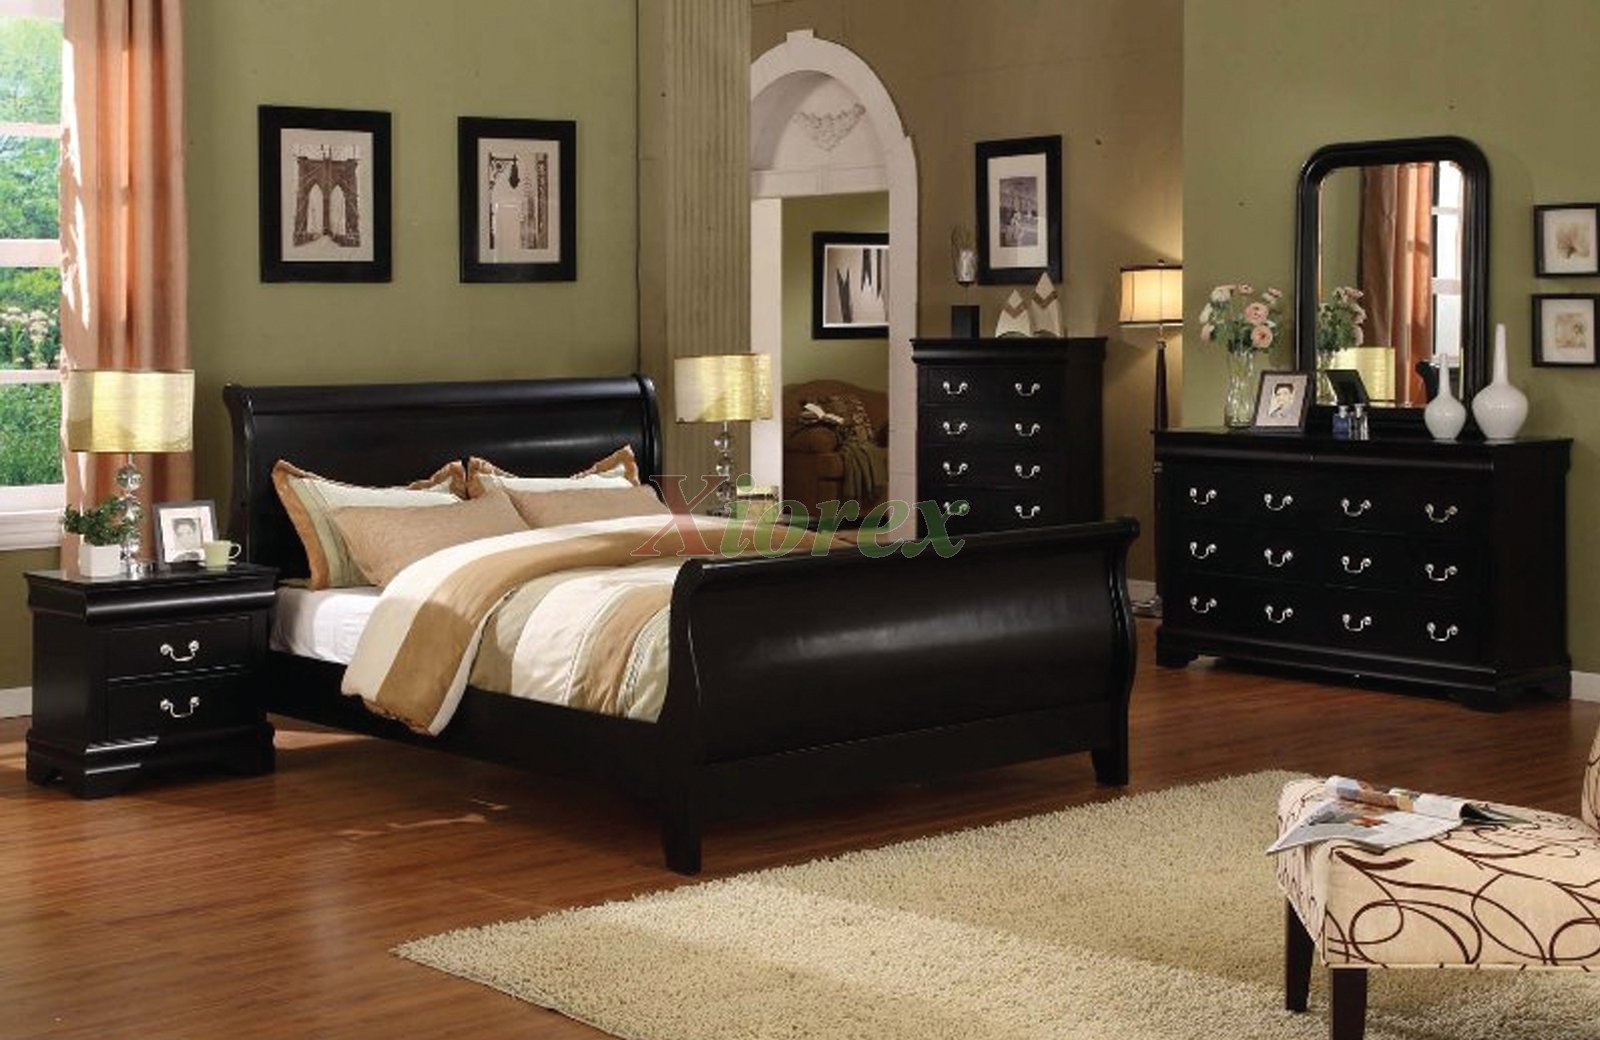 Fabulous Bedroom Furniture Sets Sleigh Bed 1600 x 1040 · 268 kB · jpeg